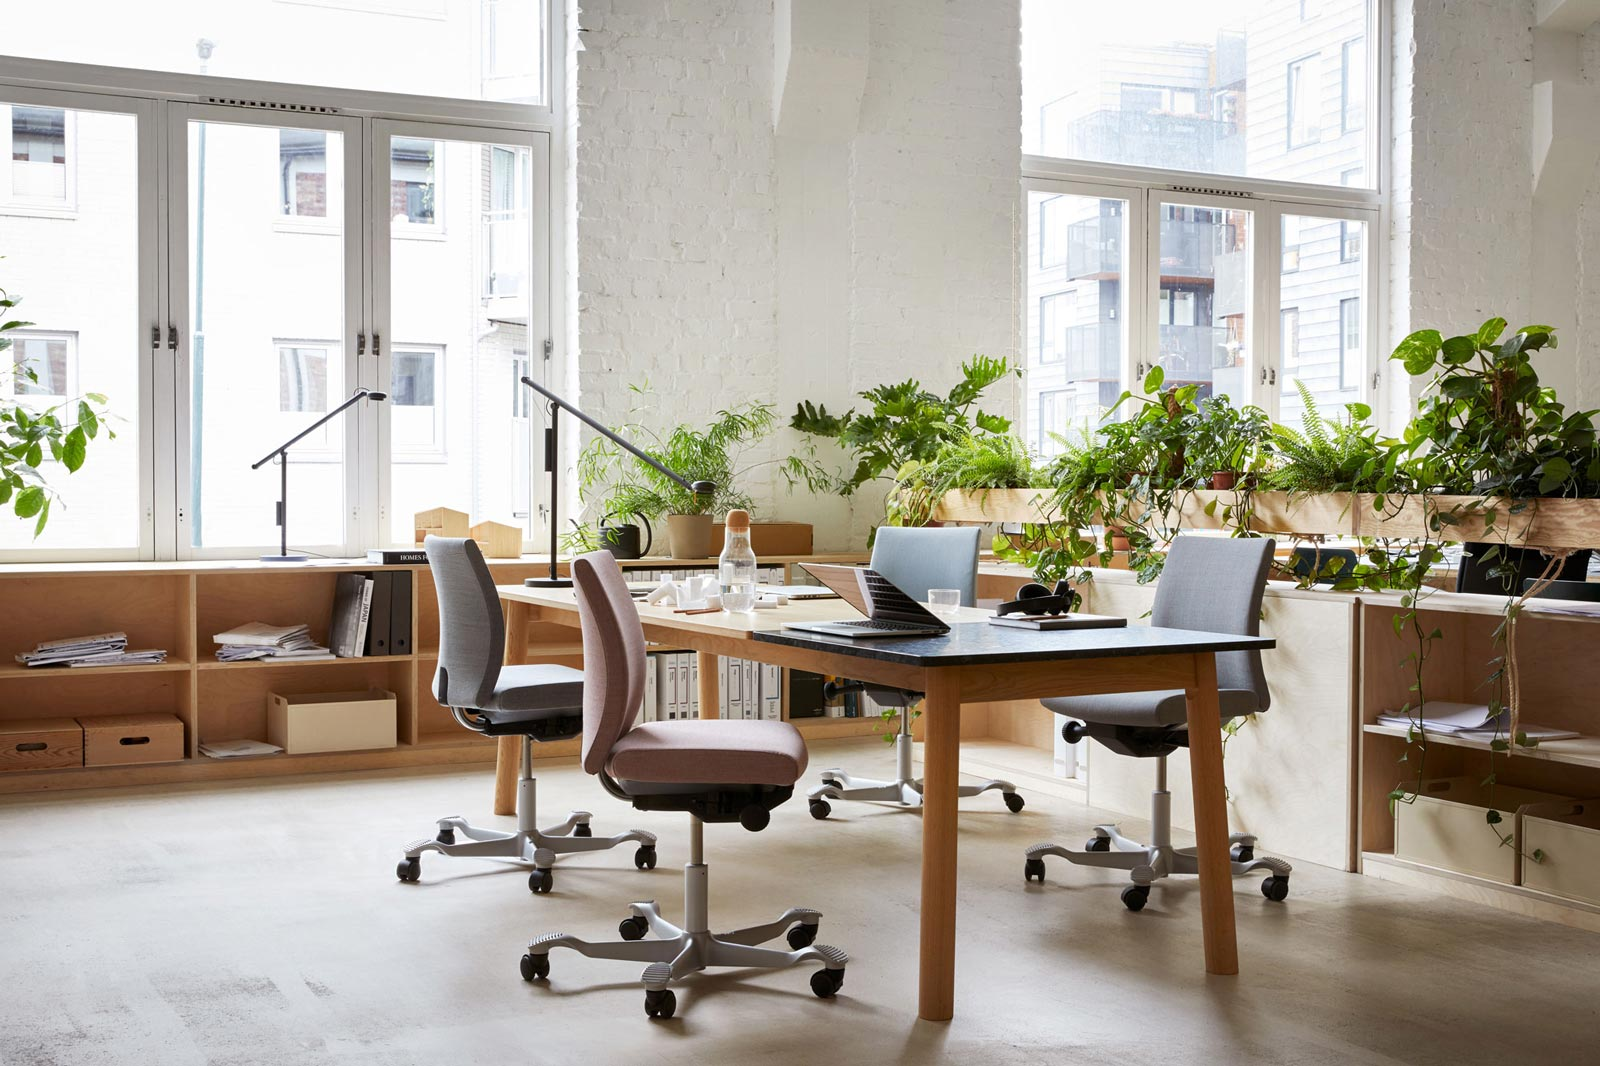 People sitting on HÅG chairs at desk